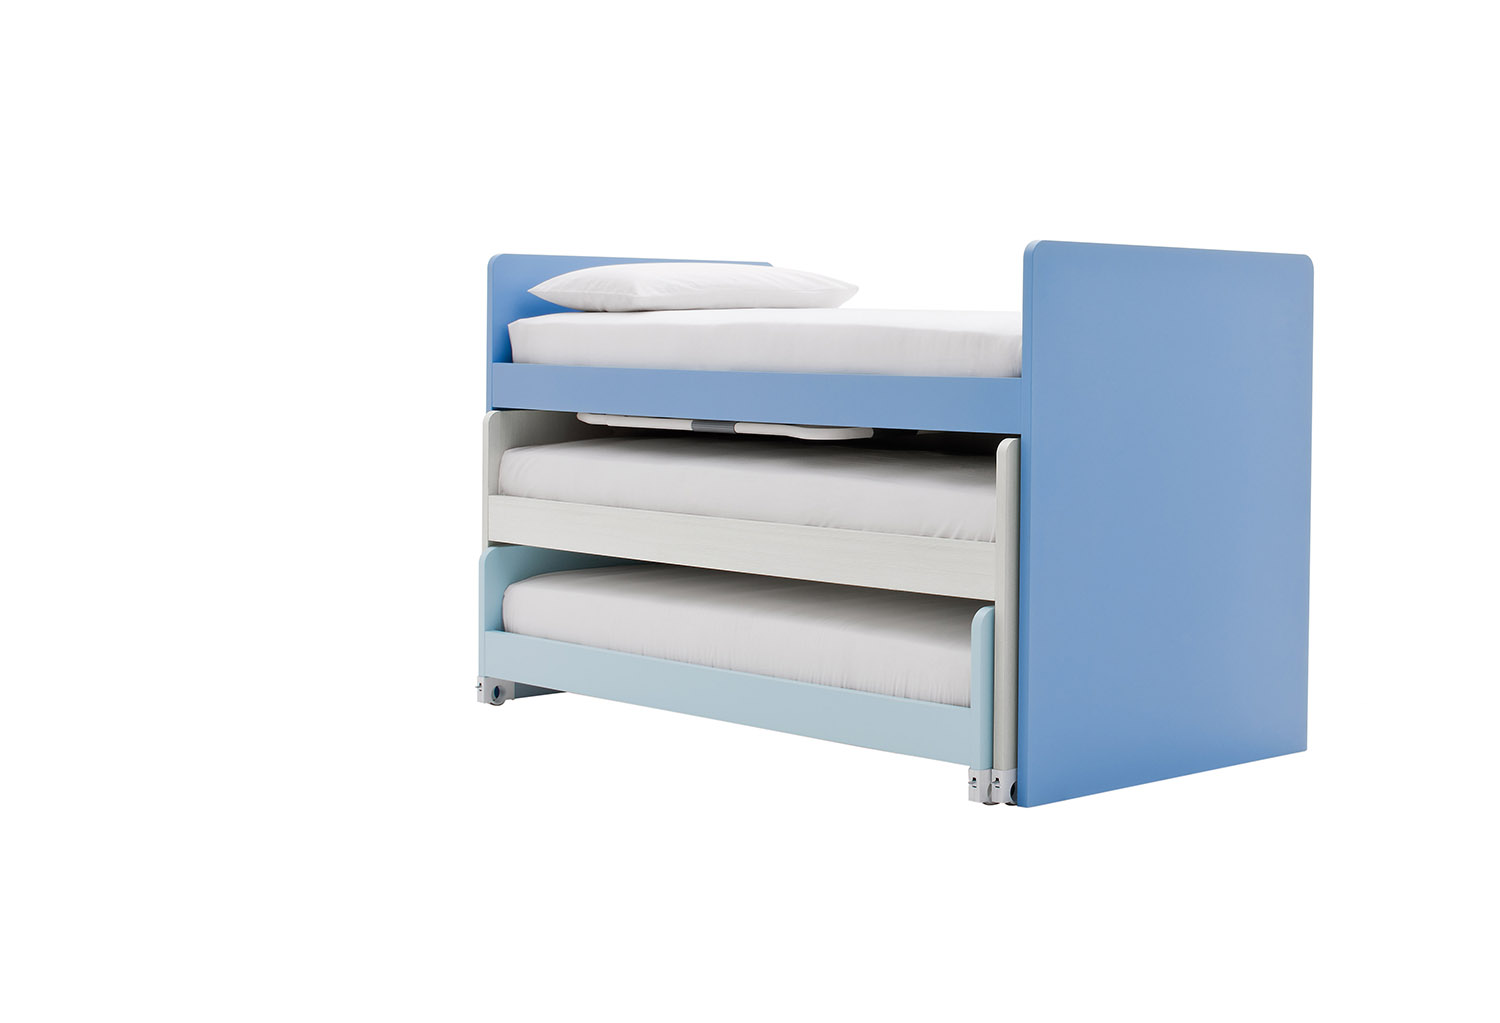 Lobby Alto triple bunk bed - CLEVER.IT